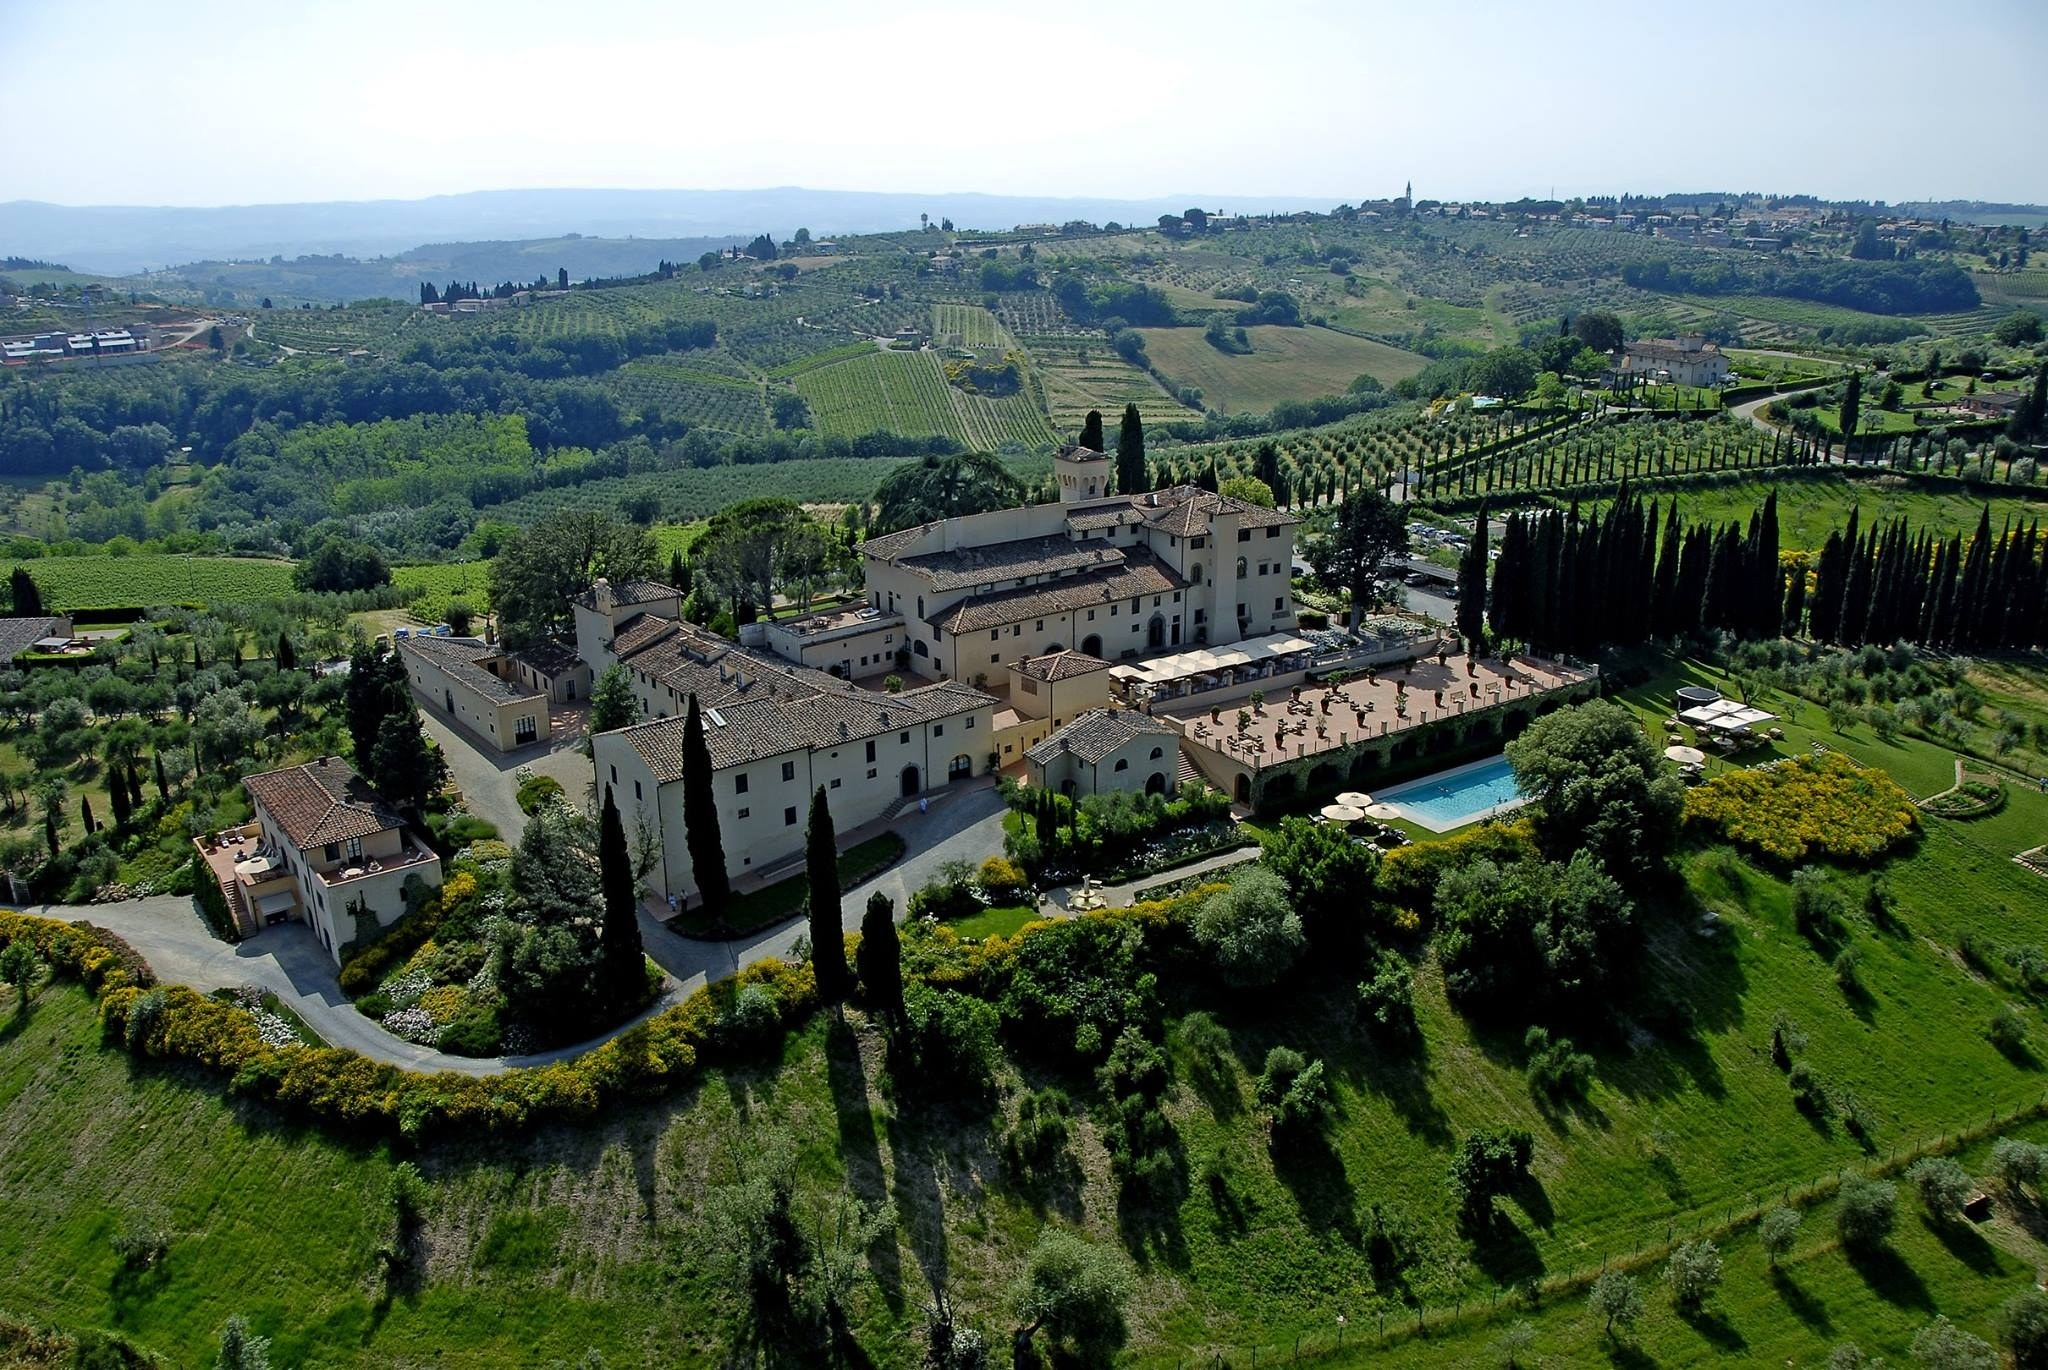 Castello del Nero Hotel & Spa, Tavarnelle Val di PesaSituated midway between Florence and Siena in Tuscany, this luxe 50-room hotel was created from a 12th-century castle and a series of 15th-to-17th-century villas. A museum-quality restoration of the frescoed walls, beamed ceilings, and terra-cotta floors was supervised by the Italian Fine Art Commission. Take the complimentary shuttles into Florence and Siena for more arts, or just stay on-site and indulge at the Espa spa (the largest in Italy) or Michelin-starred restaurant La Torre. From $483/night; castellodelnero.com